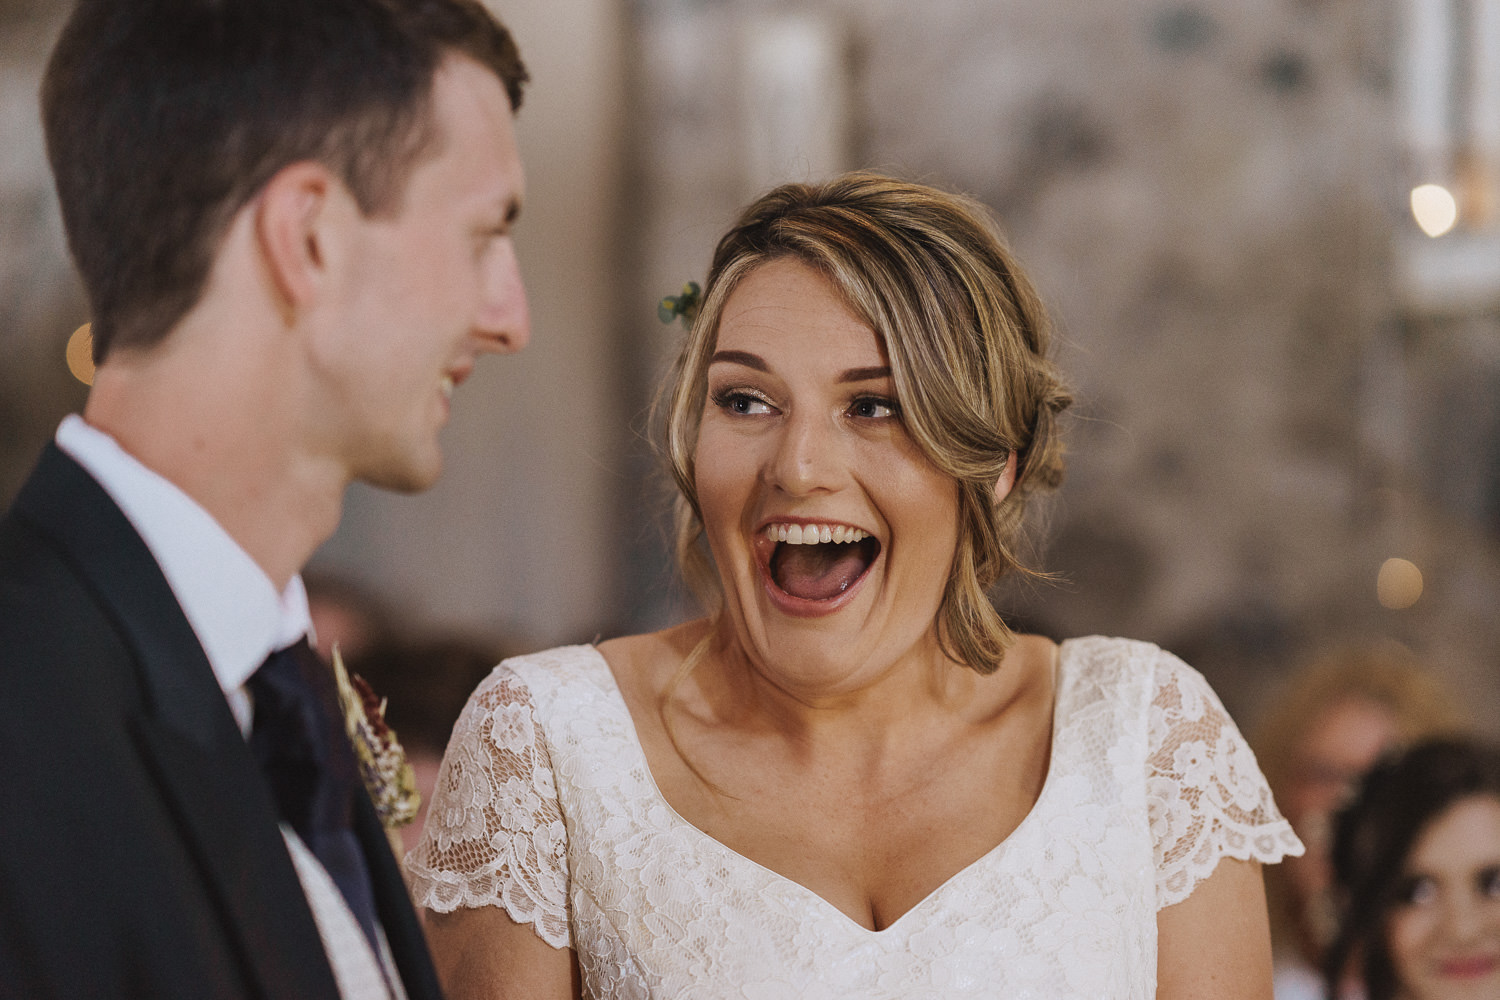 Bride with the biggest smile on her face during her ceremony